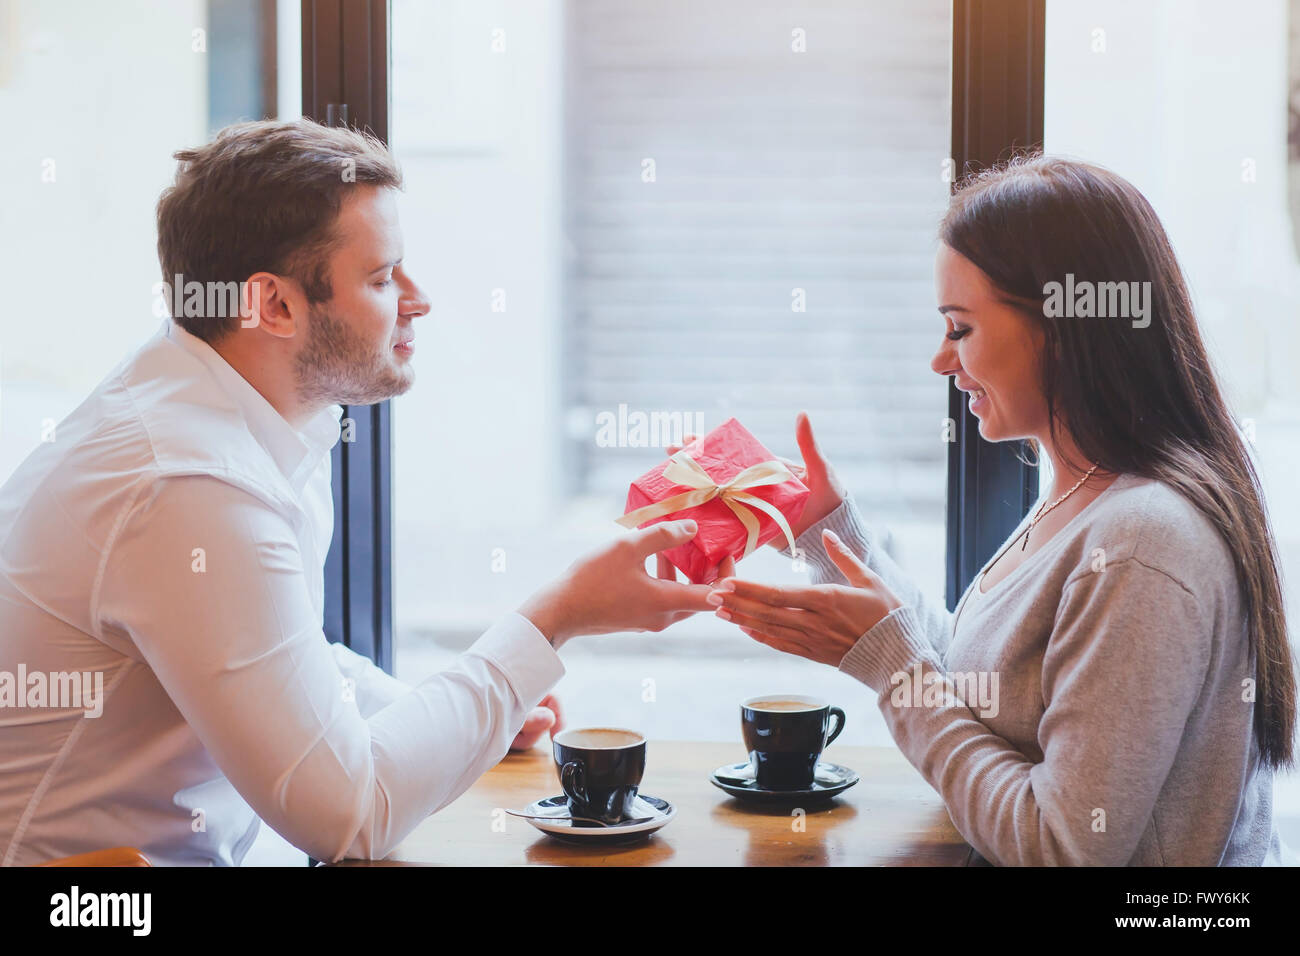 man and woman, gift, romantic dating - Stock Image